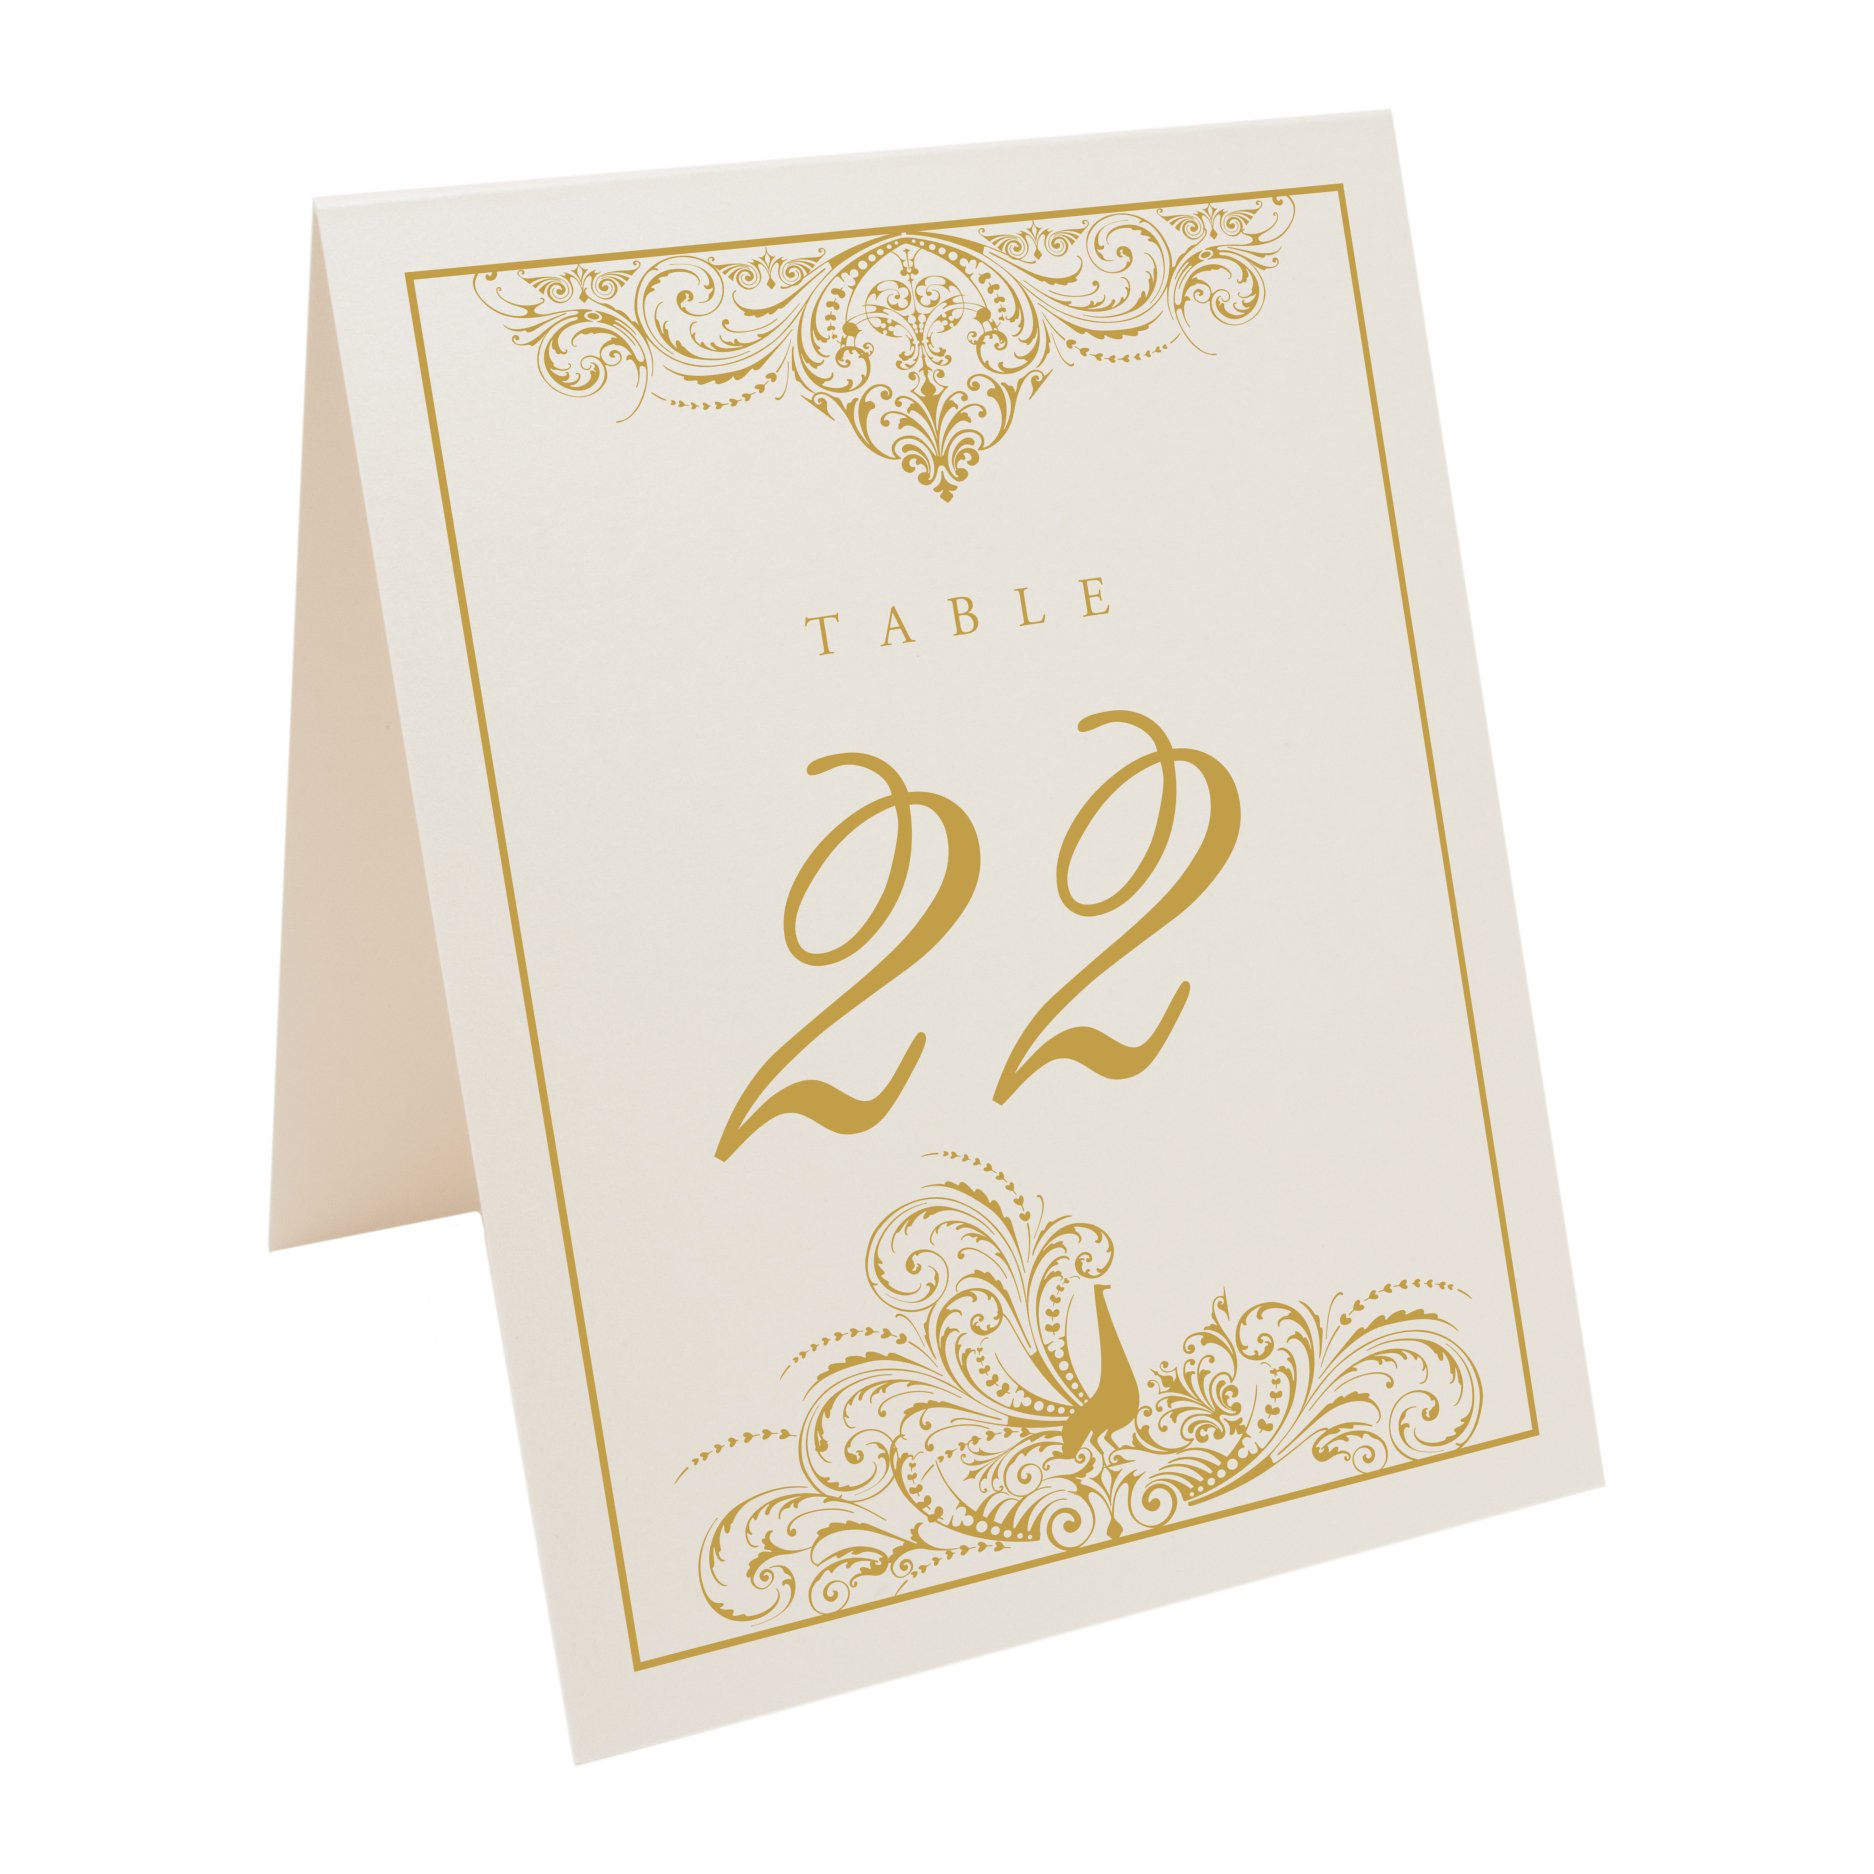 Documents and Designs Peacock Flourish Table Numbers (Select Color/Quantity), Champagne, Gold, 1-25 by Documents and Designs